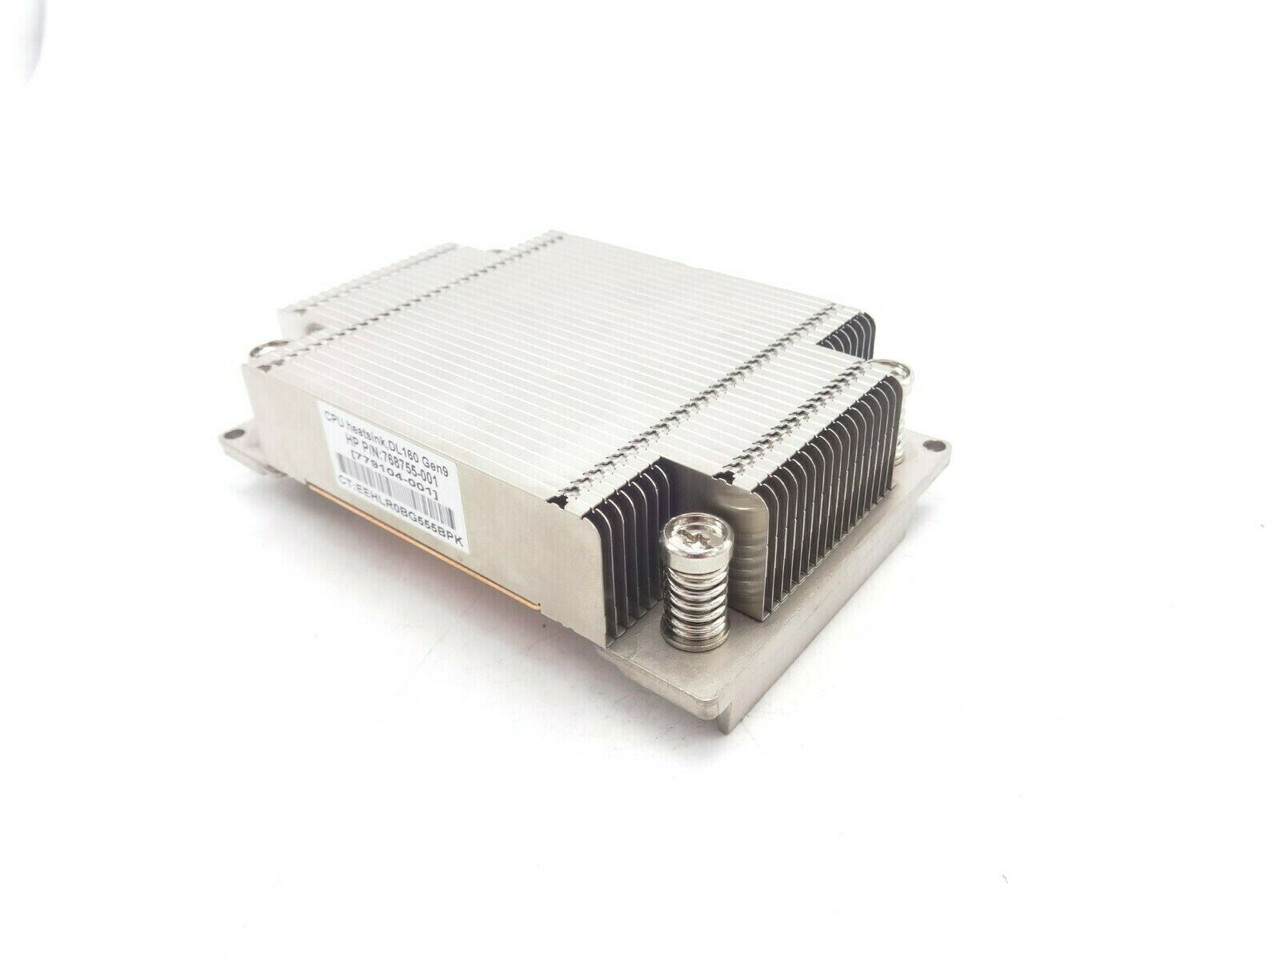 HP 779104-001 Proliant DL160 G9 heatsink